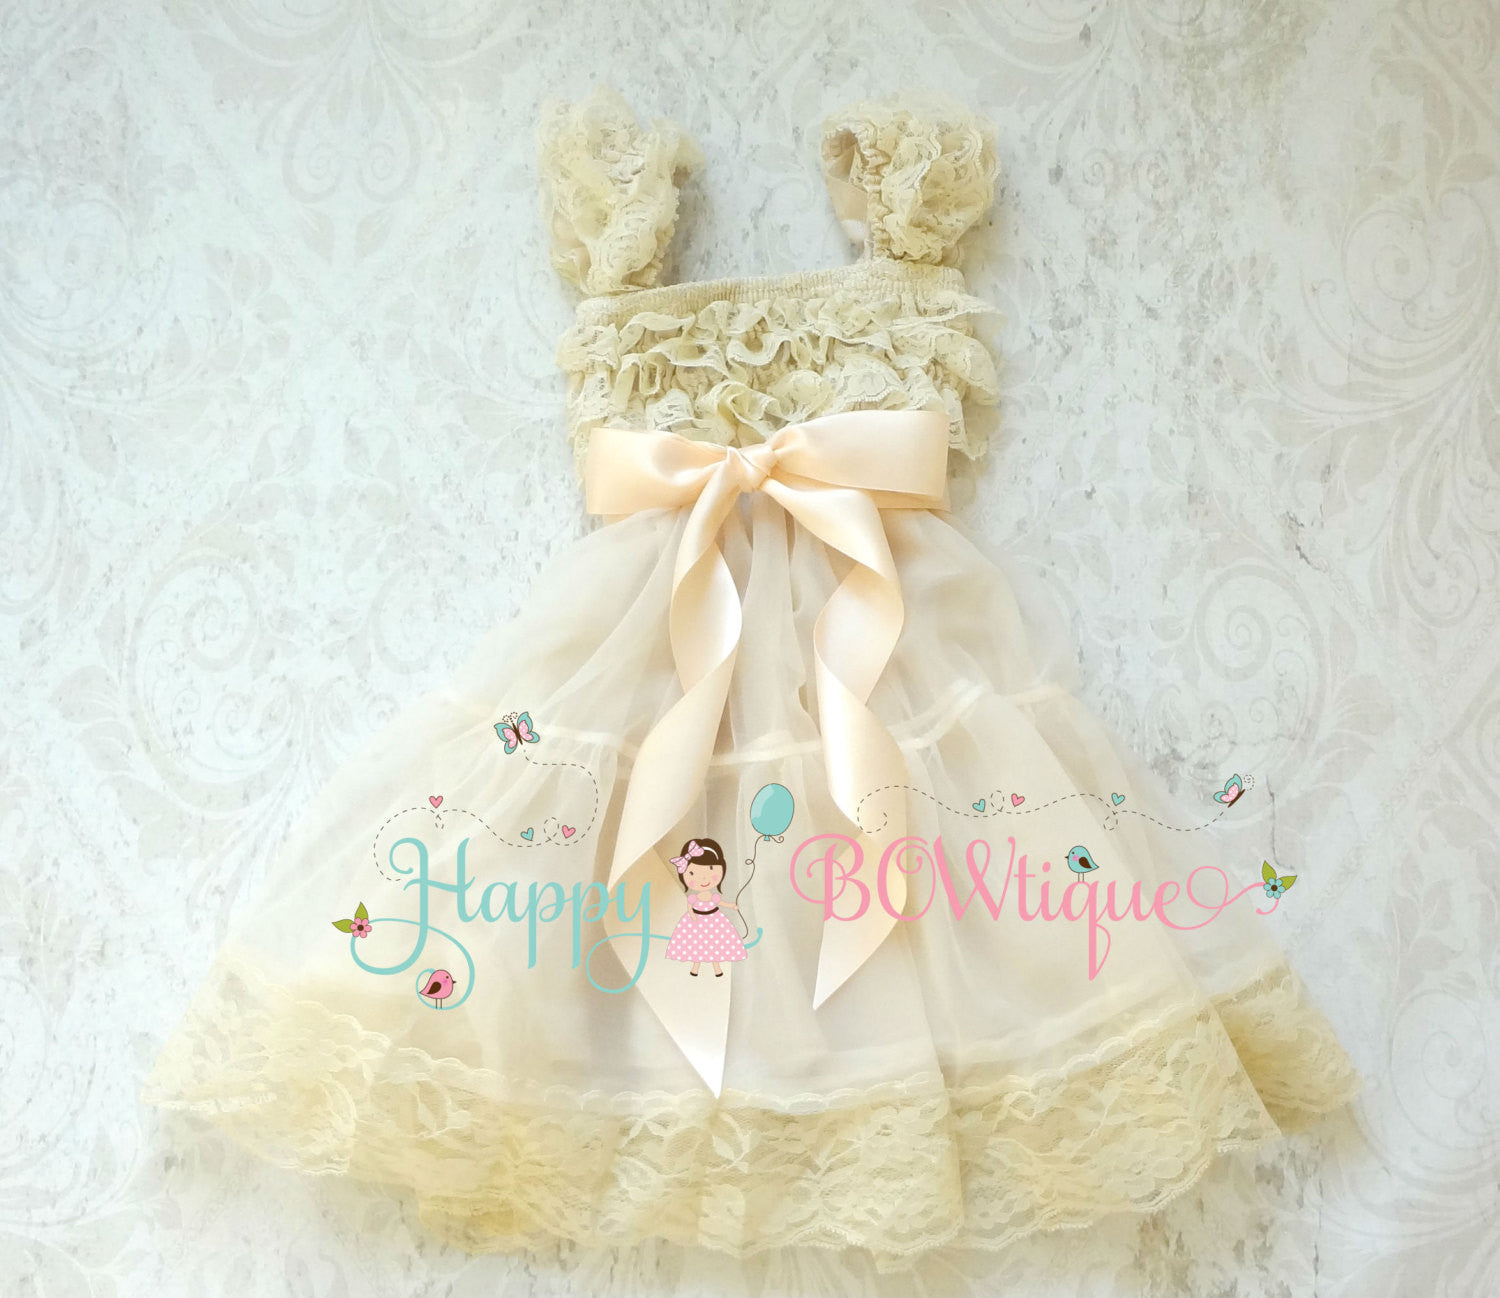 Blush Champagne Babydoll Chiffon Lace Dress - Happy BOWtique - children's clothing, Baby Girl clothing